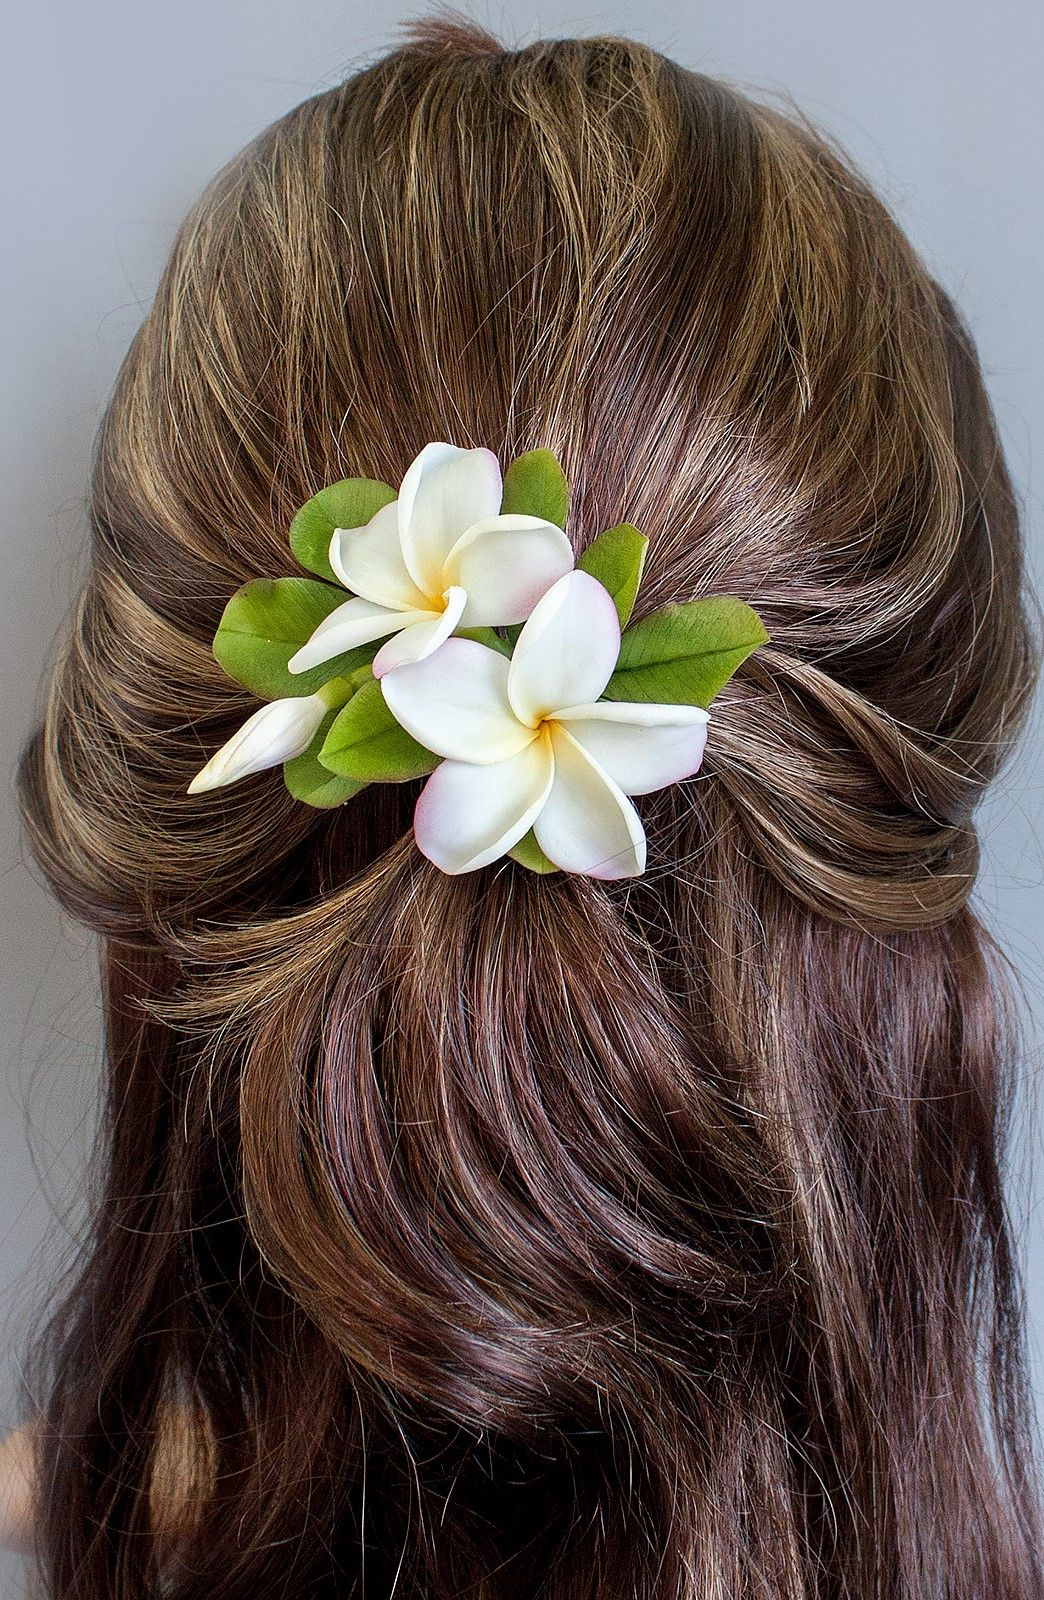 Hair Clip Plumeria Realistic Hawaiian Flower Bridal Hair Etsy In 2020 Floral Accessories Hair Flowers In Hair Flower Hair Pin